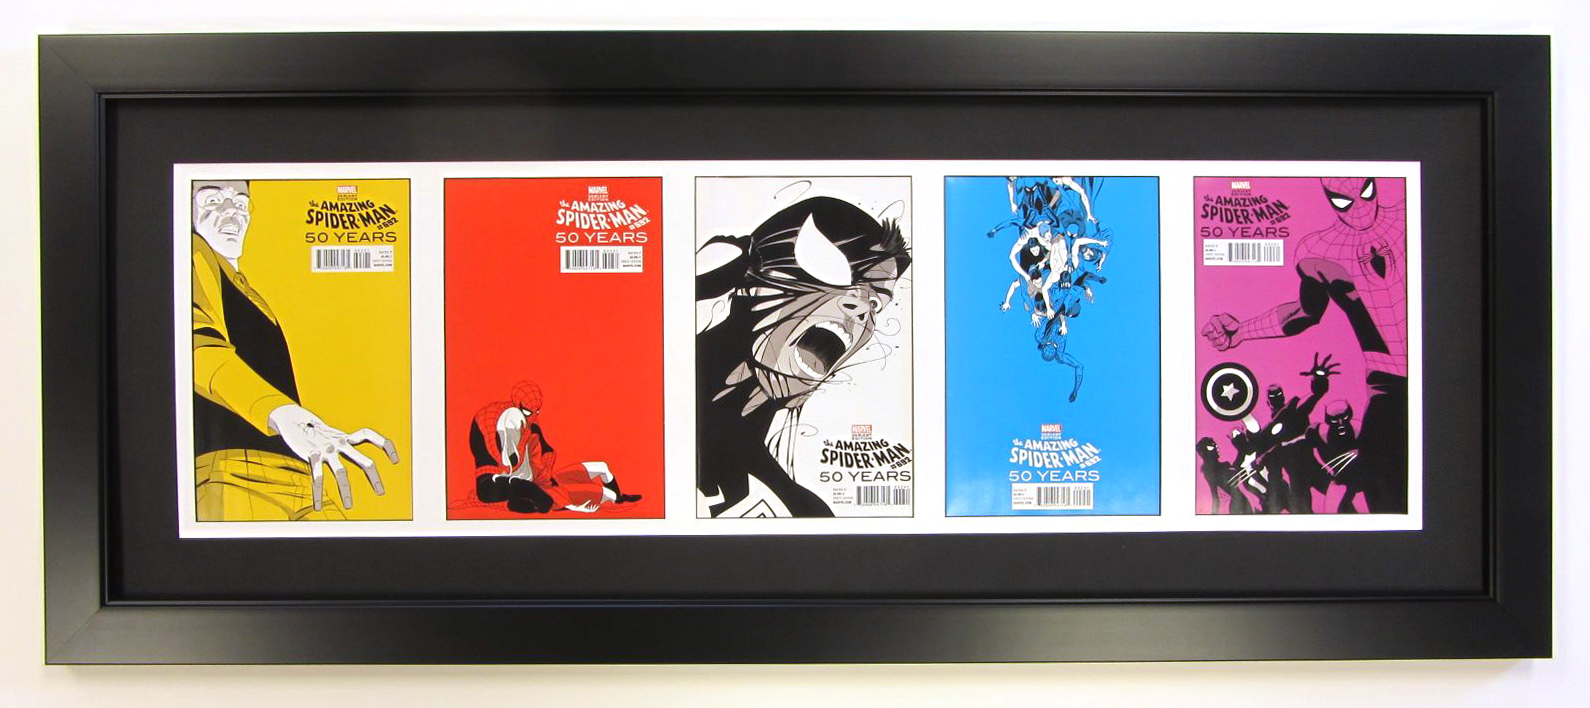 framed comic book   Hang with Big Picture Framing